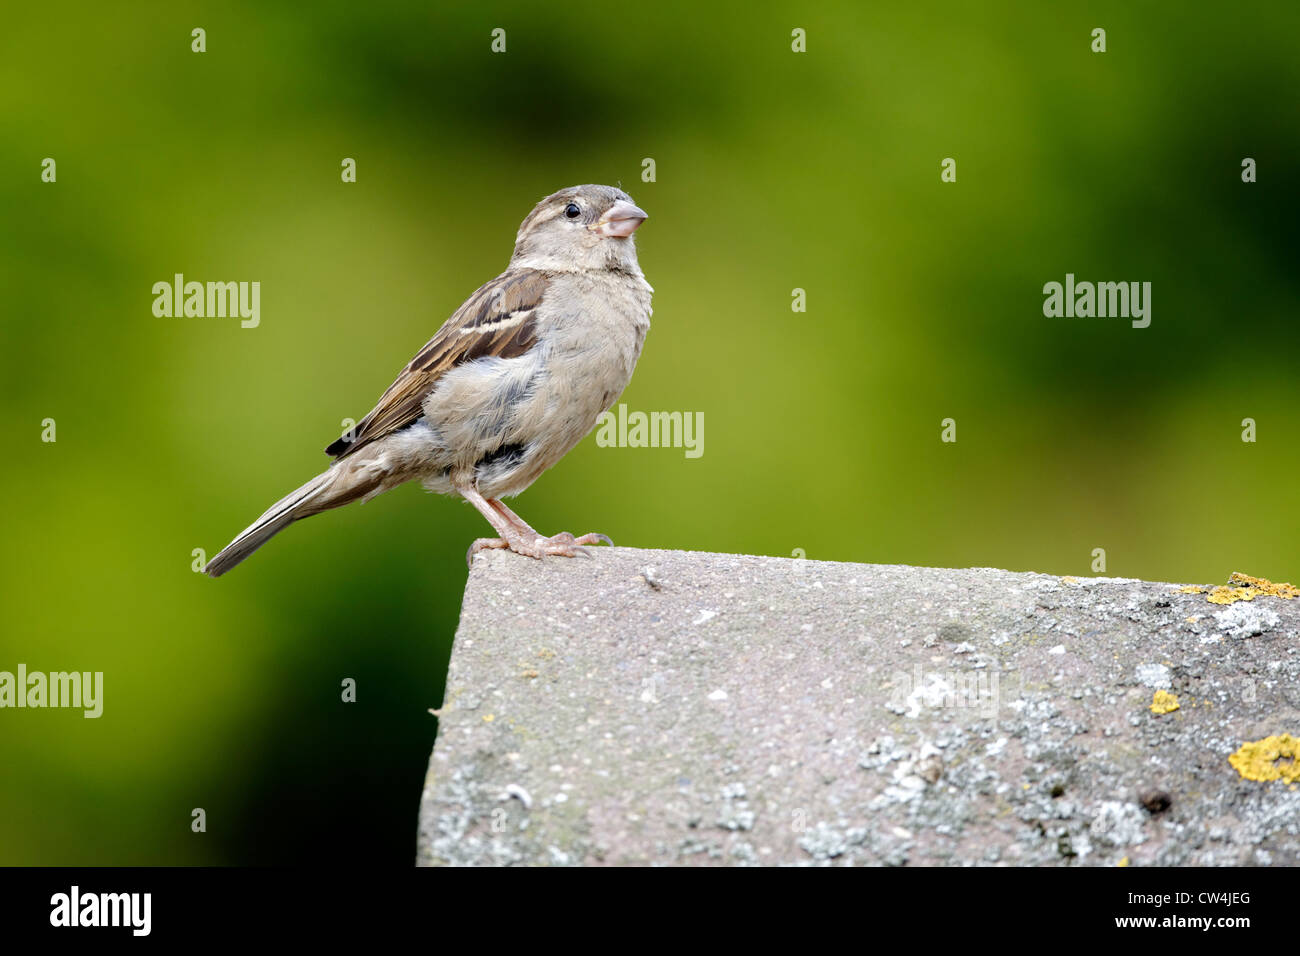 House sparrow, Passer domesticus. single female on tiled roof, Staffordshire, August 2012 Stock Photo